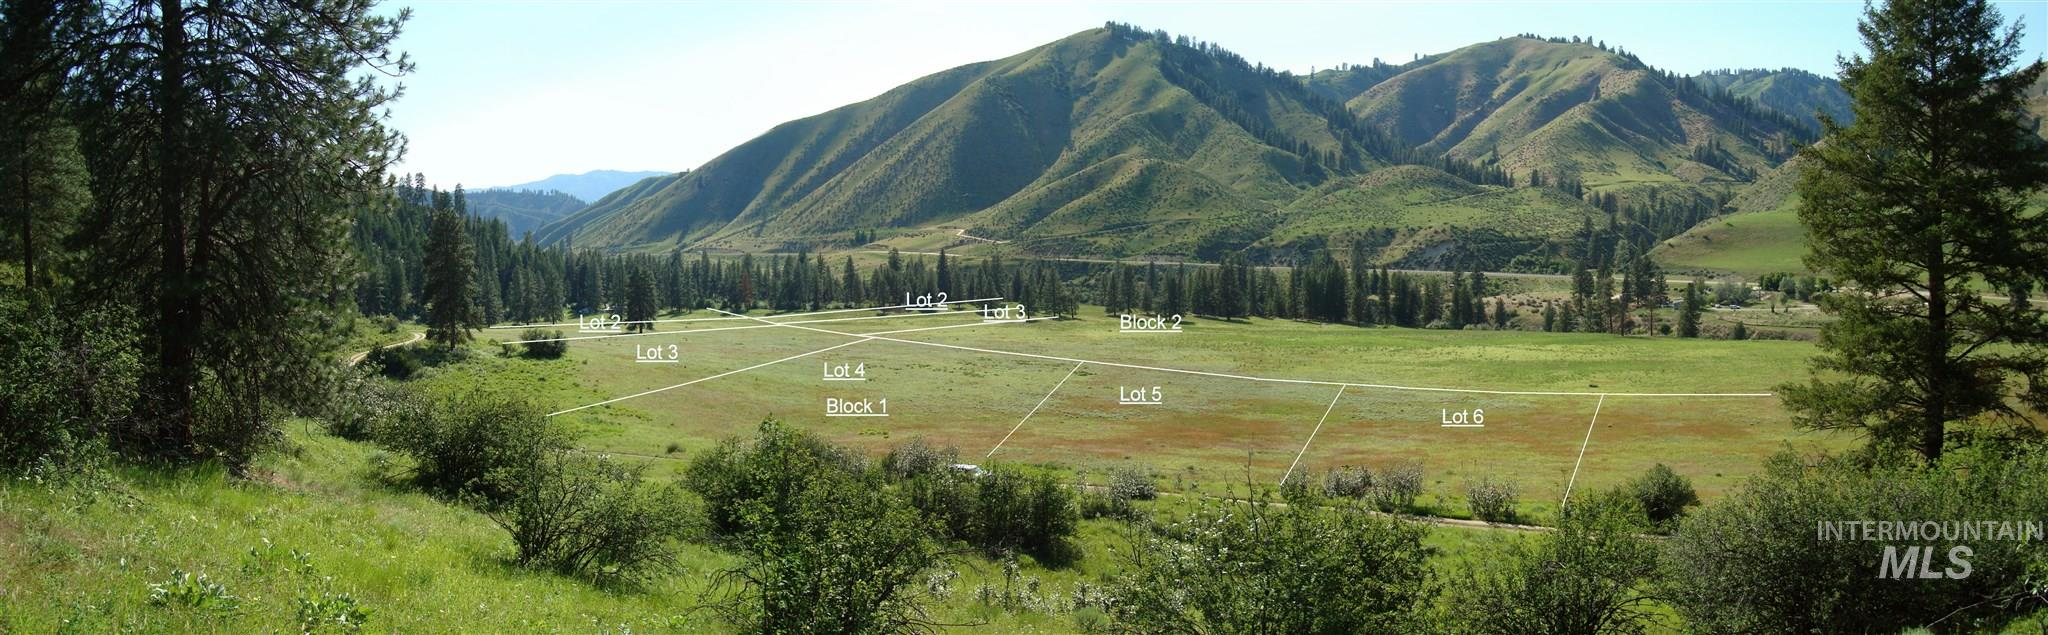 TBD Blk 1 Lot 4 Payette River Heights, Garden Valley, ID 83622